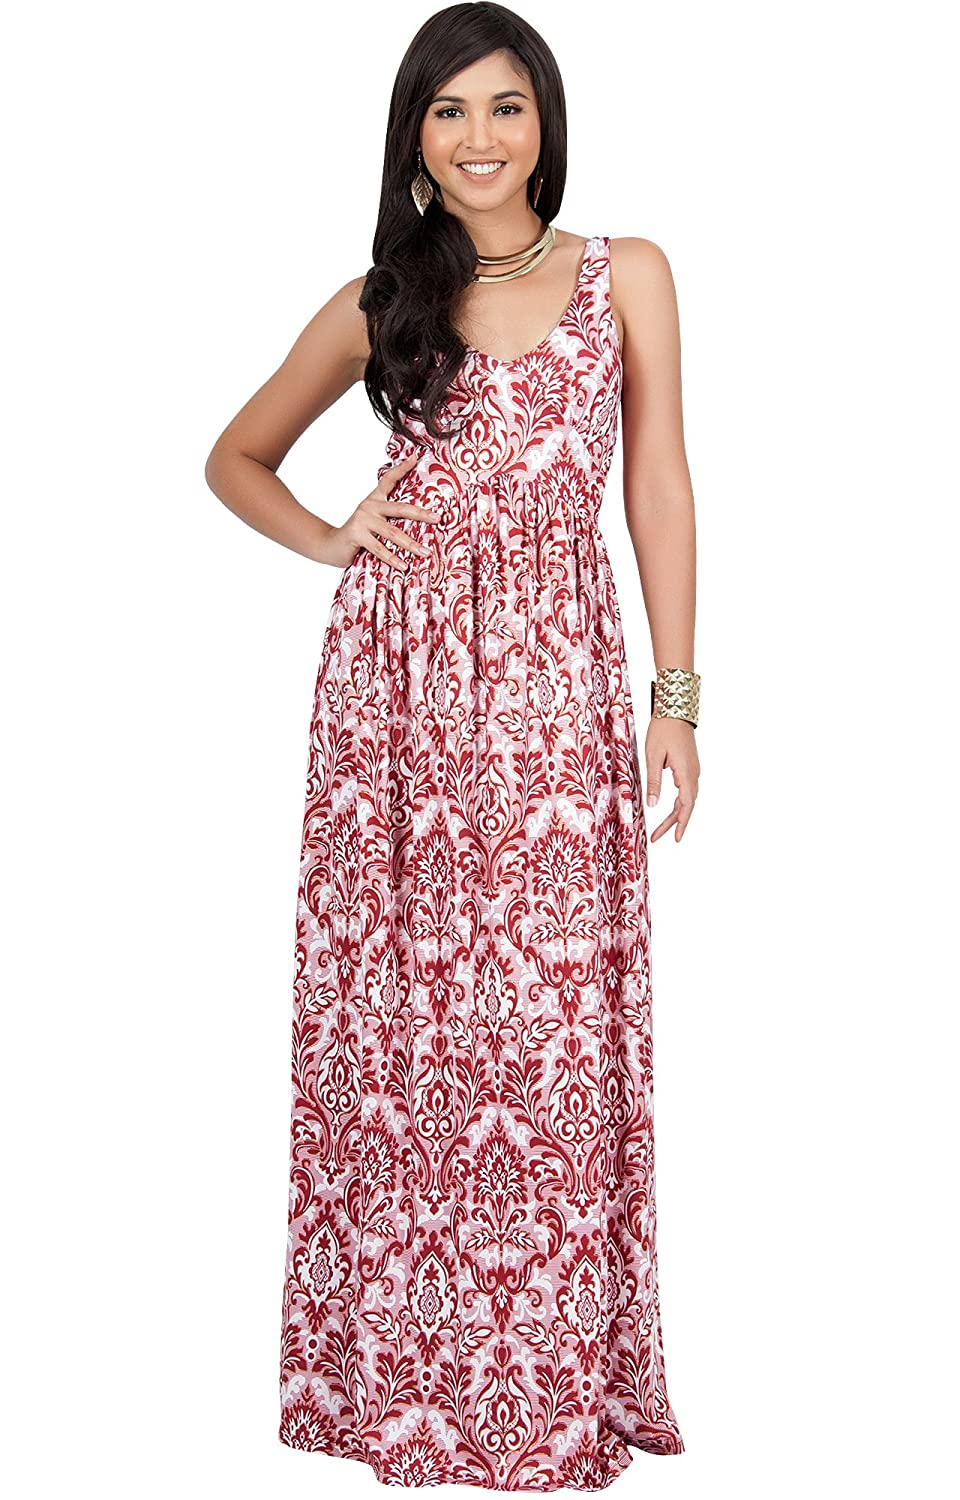 GARMENT CARE - Hand or machine washable. Can be dry-cleaned if desired. PLUS  SIZE - This great maxi dress design is also available in plus sizes 4e93d53ae